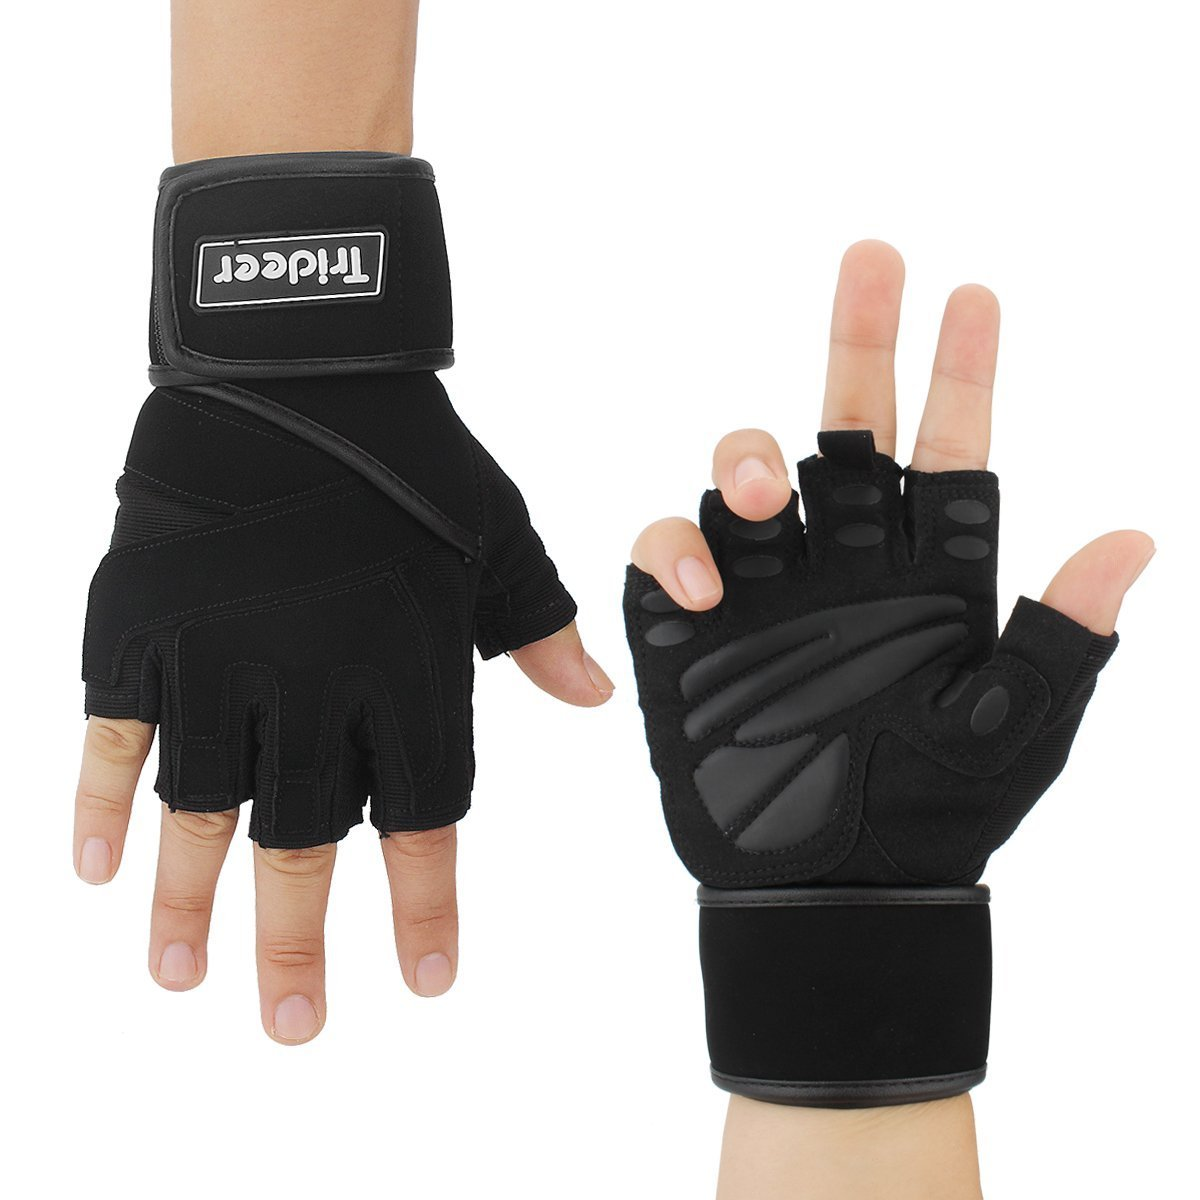 Women S Fitness Gloves With Wrist Support: Best Rated In Exercise Gloves & Helpful Customer Reviews